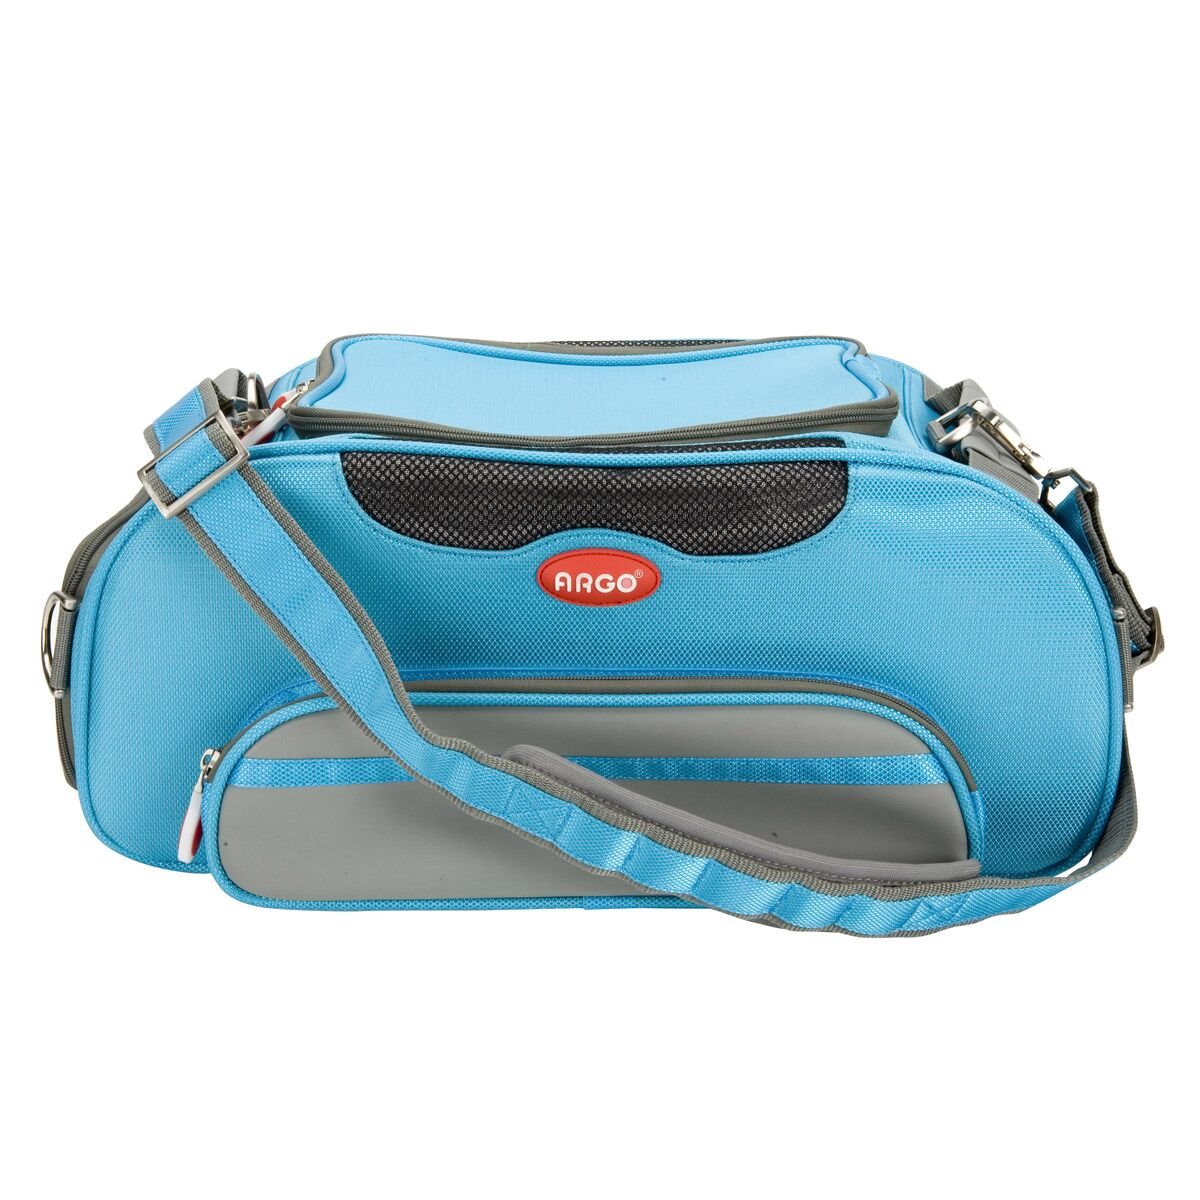 Argo Aero-Pet Airline Approved Pet Carrier Color: Blue, Size: Large (9.25